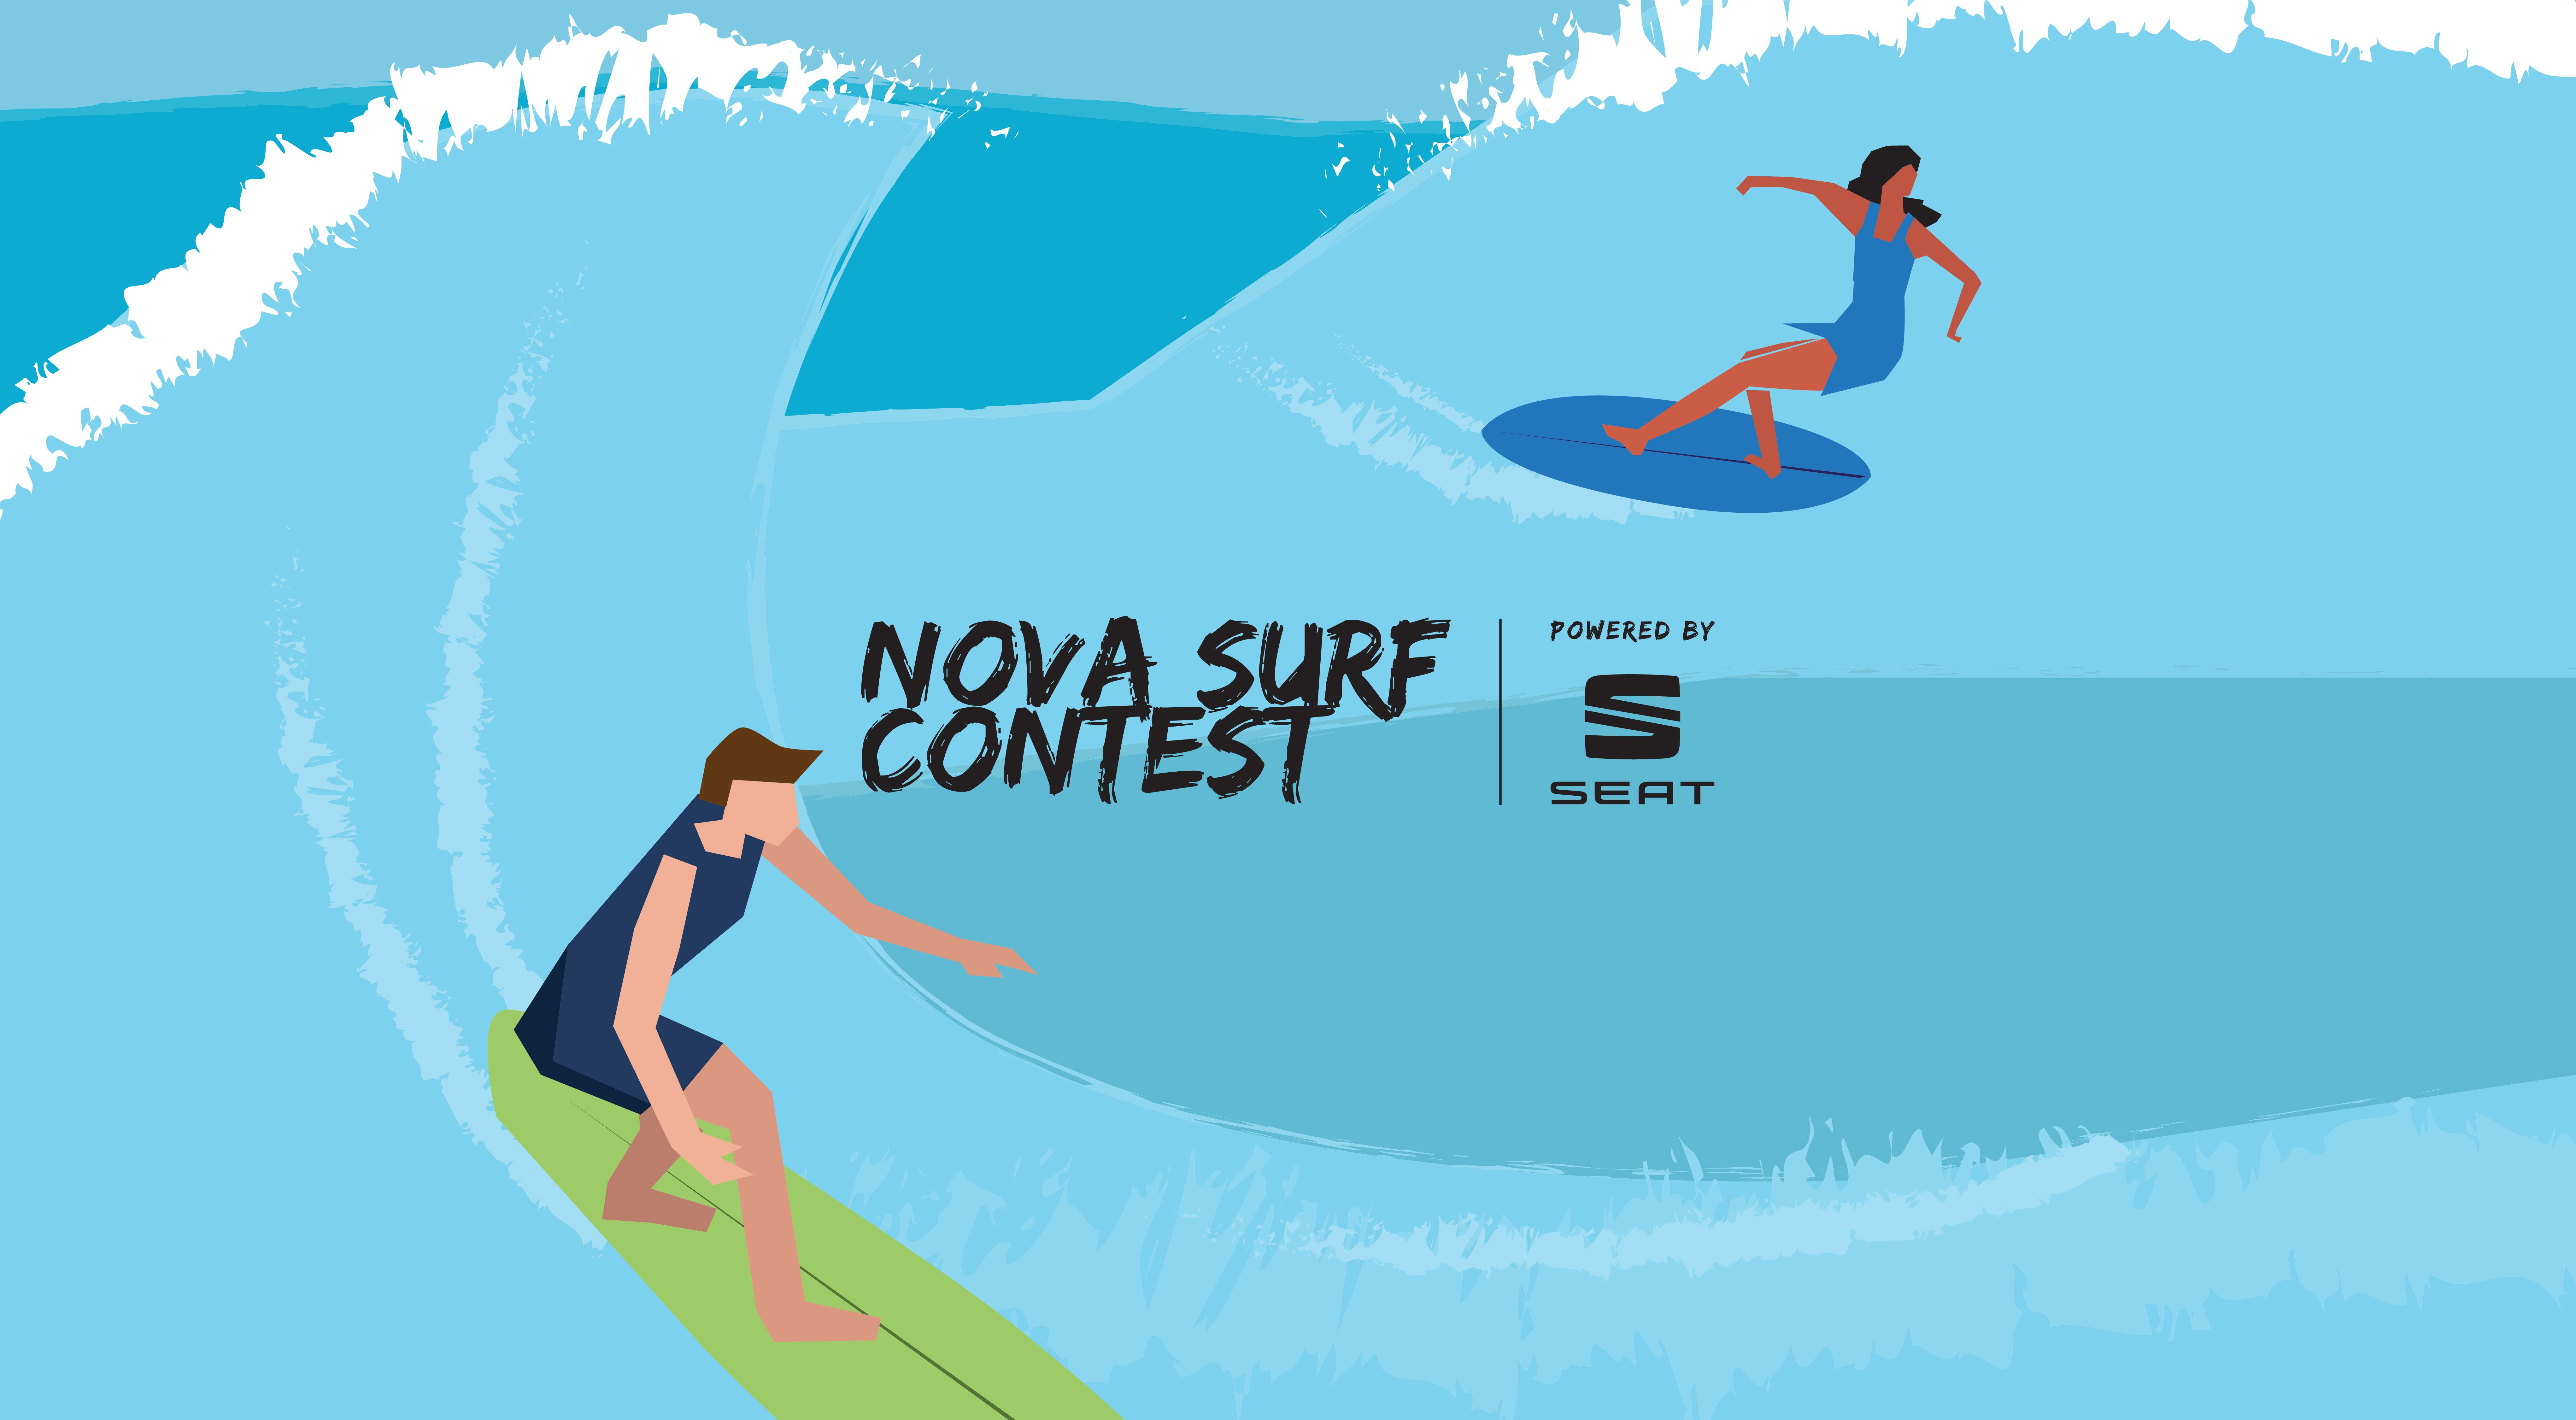 Nova Surf Contest 3rd edition about to take place